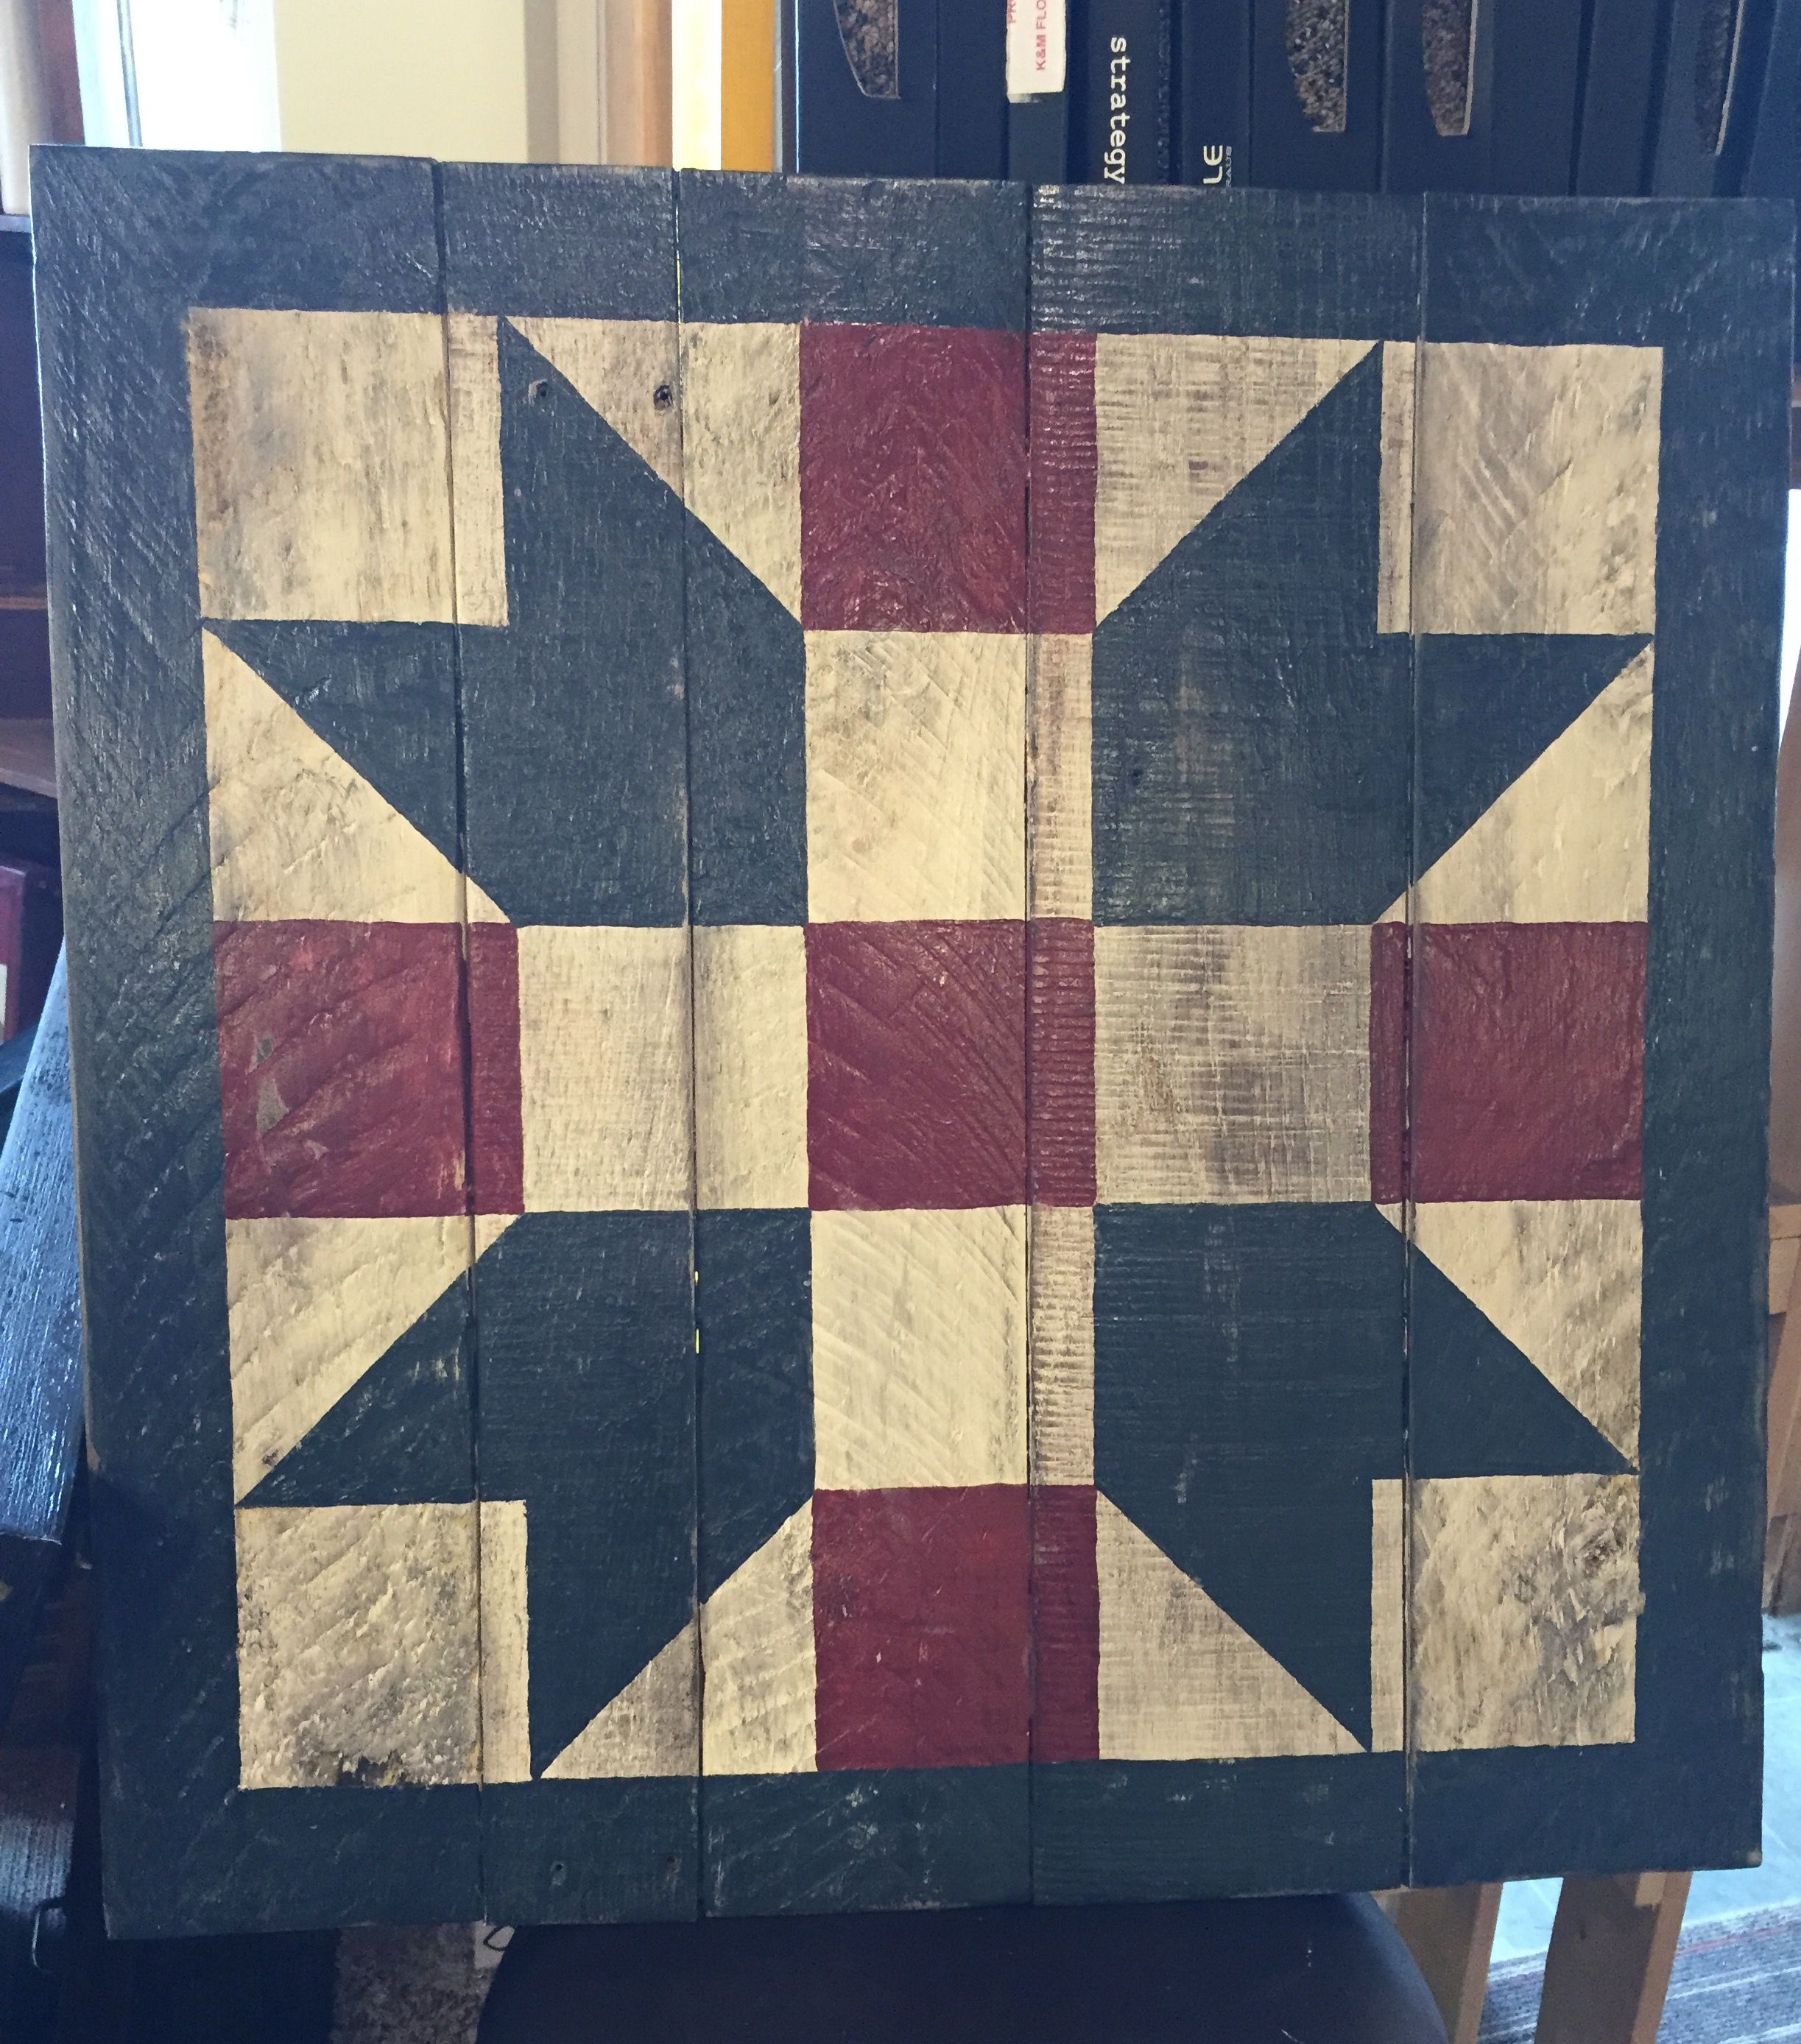 Father S Choice By Barn Quilts Of Wabash County Barn